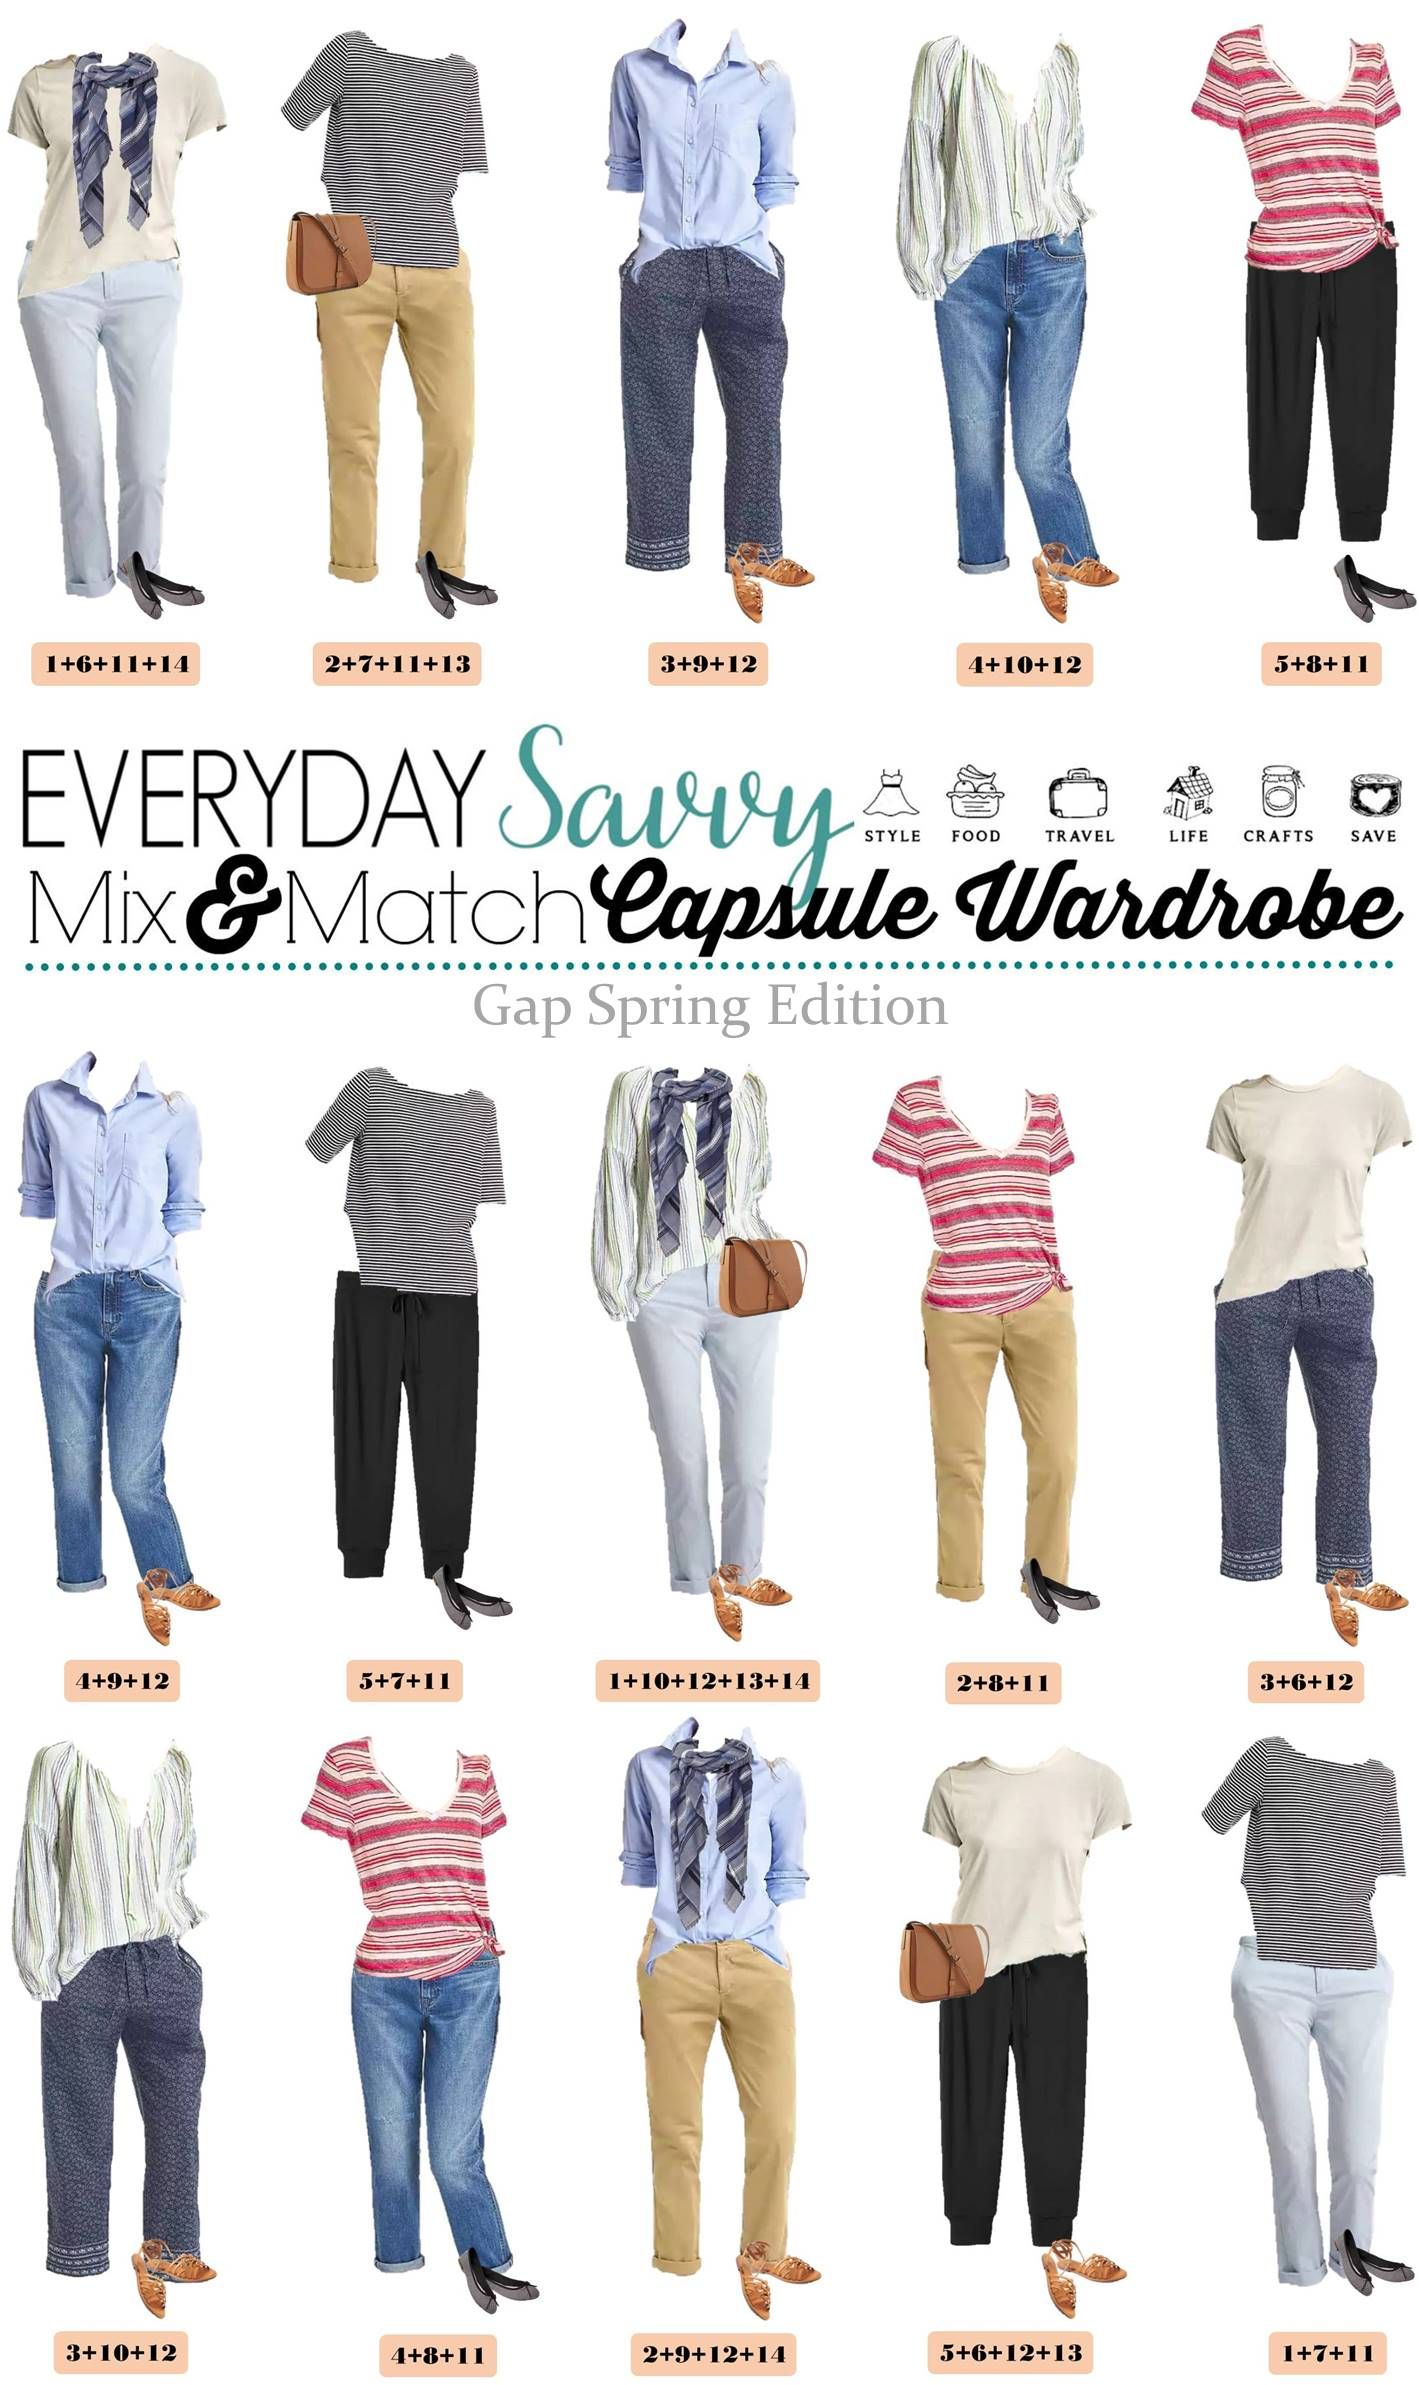 Gap Spring Capsule Wardrobe Great For Everyday Amp Travel